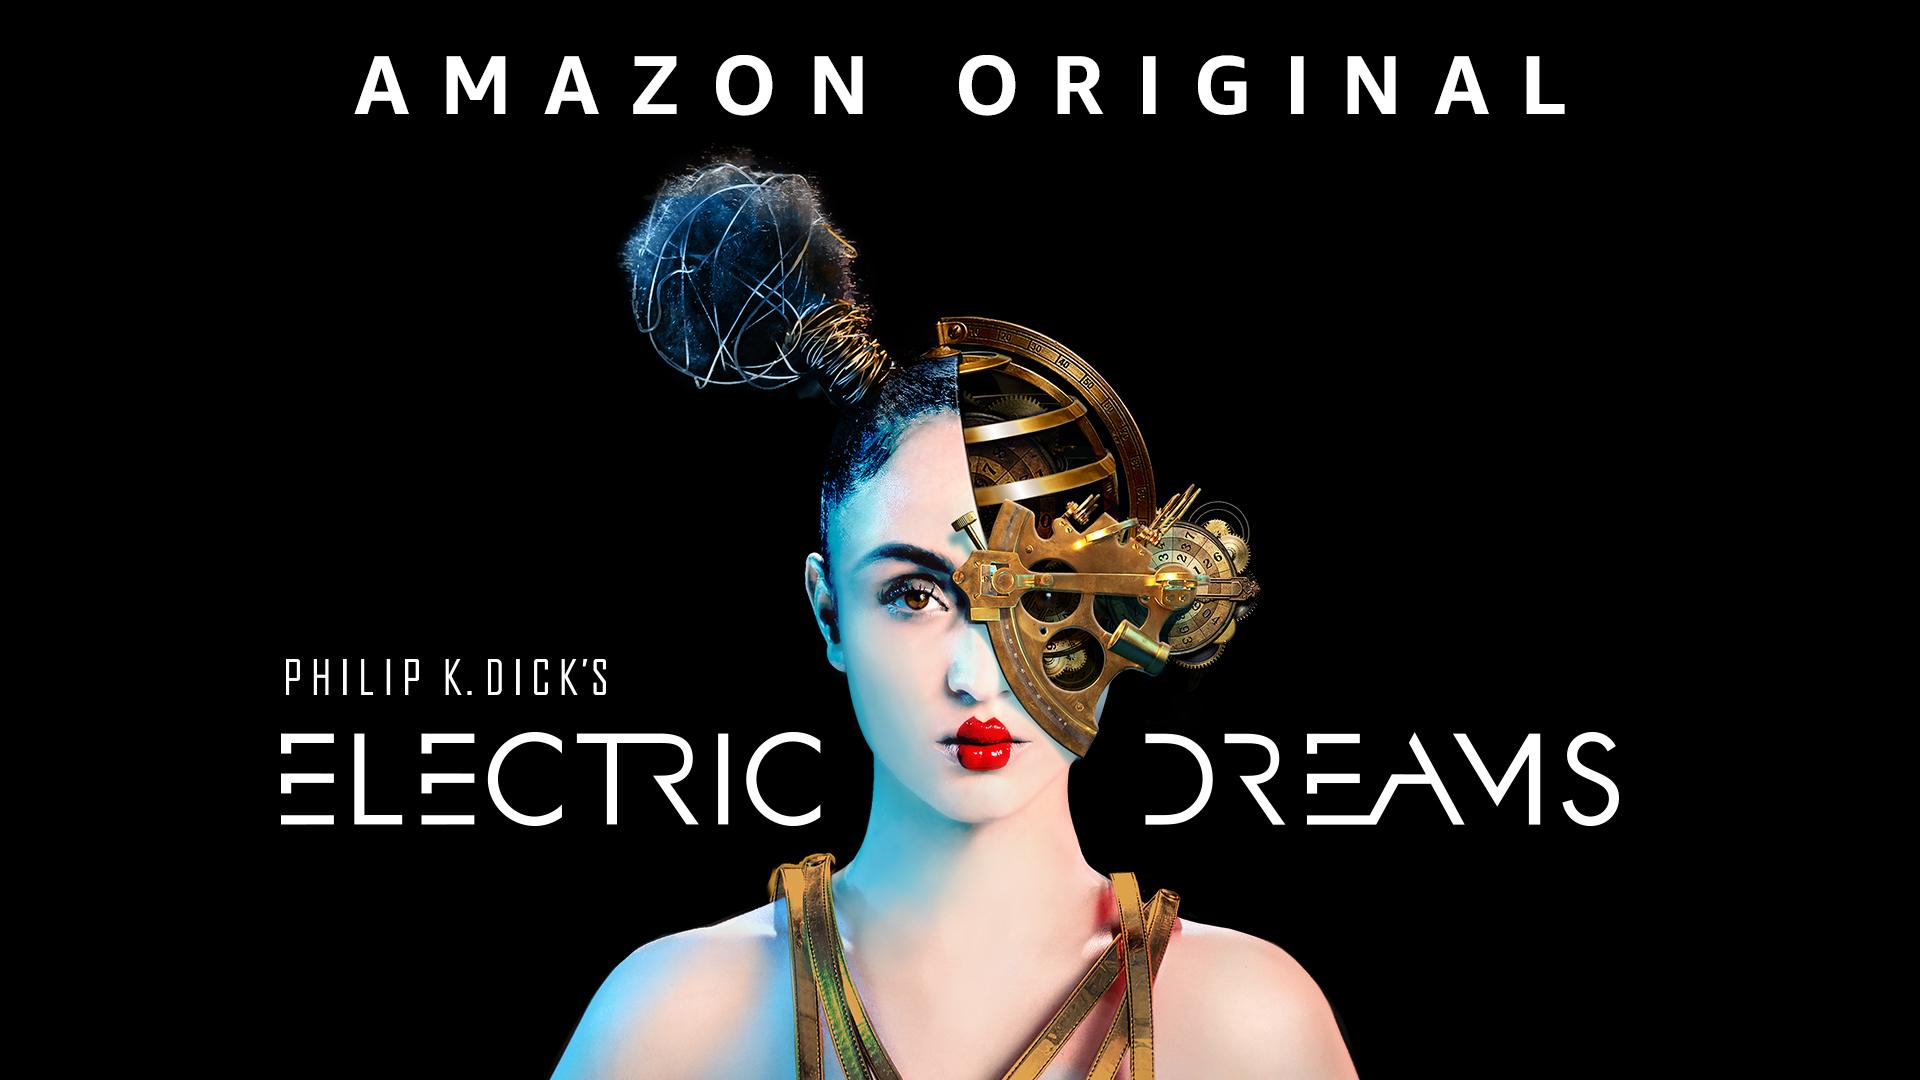 Philip K. Dick's Electric Dreams - Staffel 1